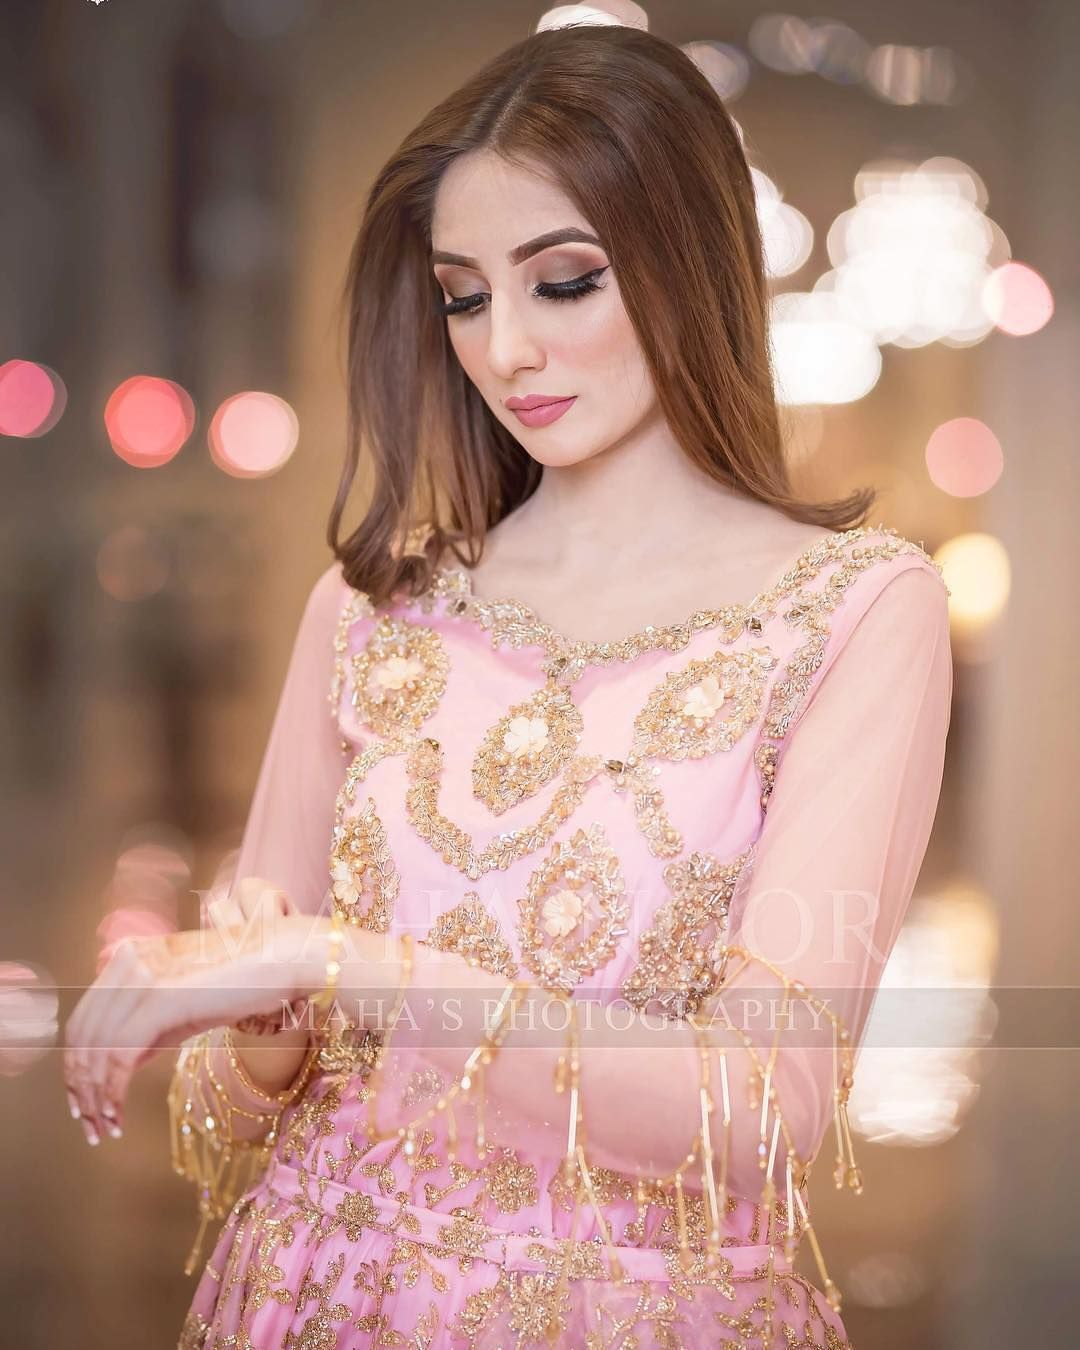 In Pakistan and India Brides wear pink or peaches bridals